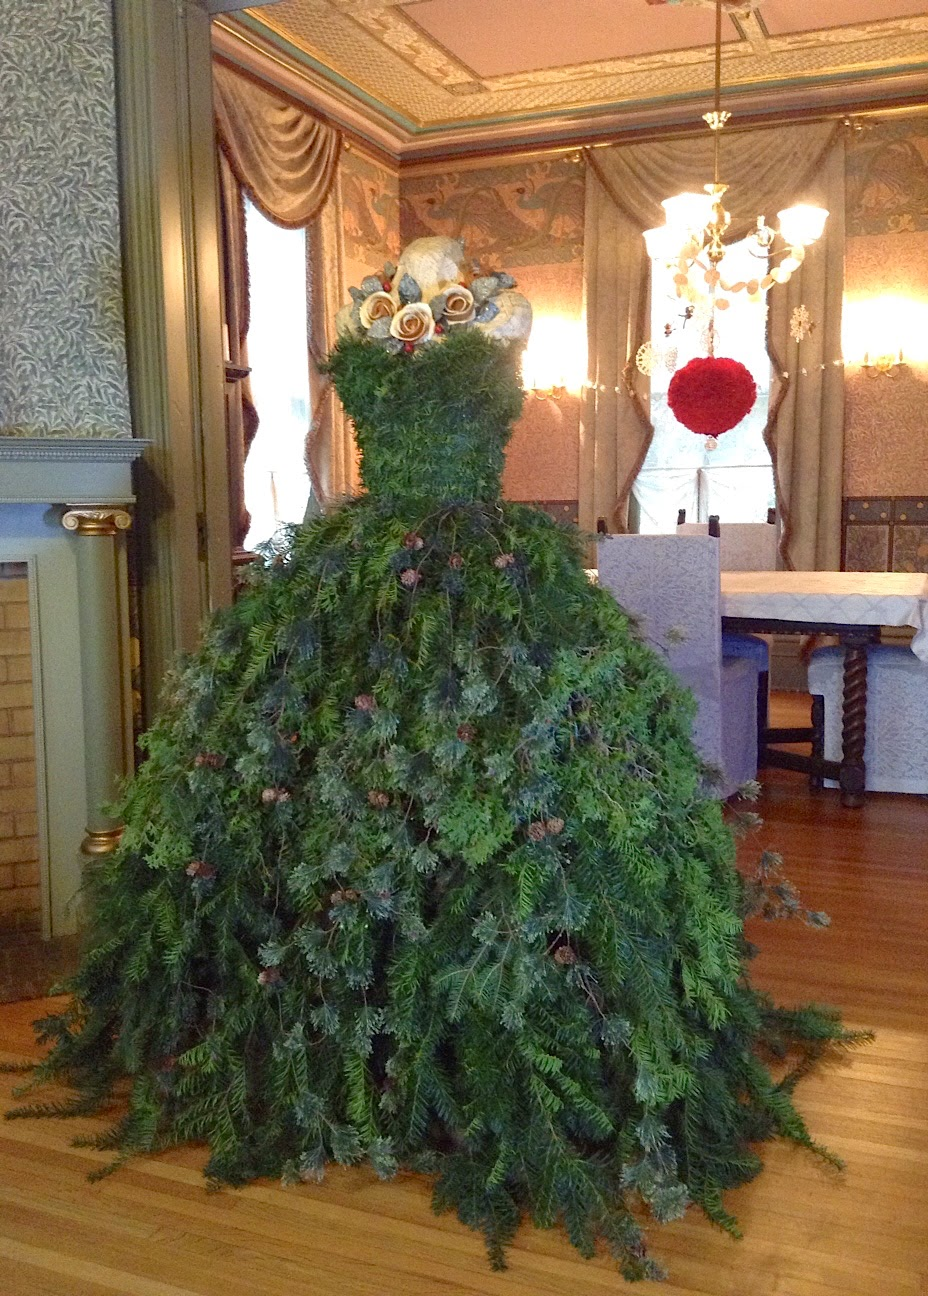 Christmas Tree Dress 2014 DIY - The Countess' New Gown